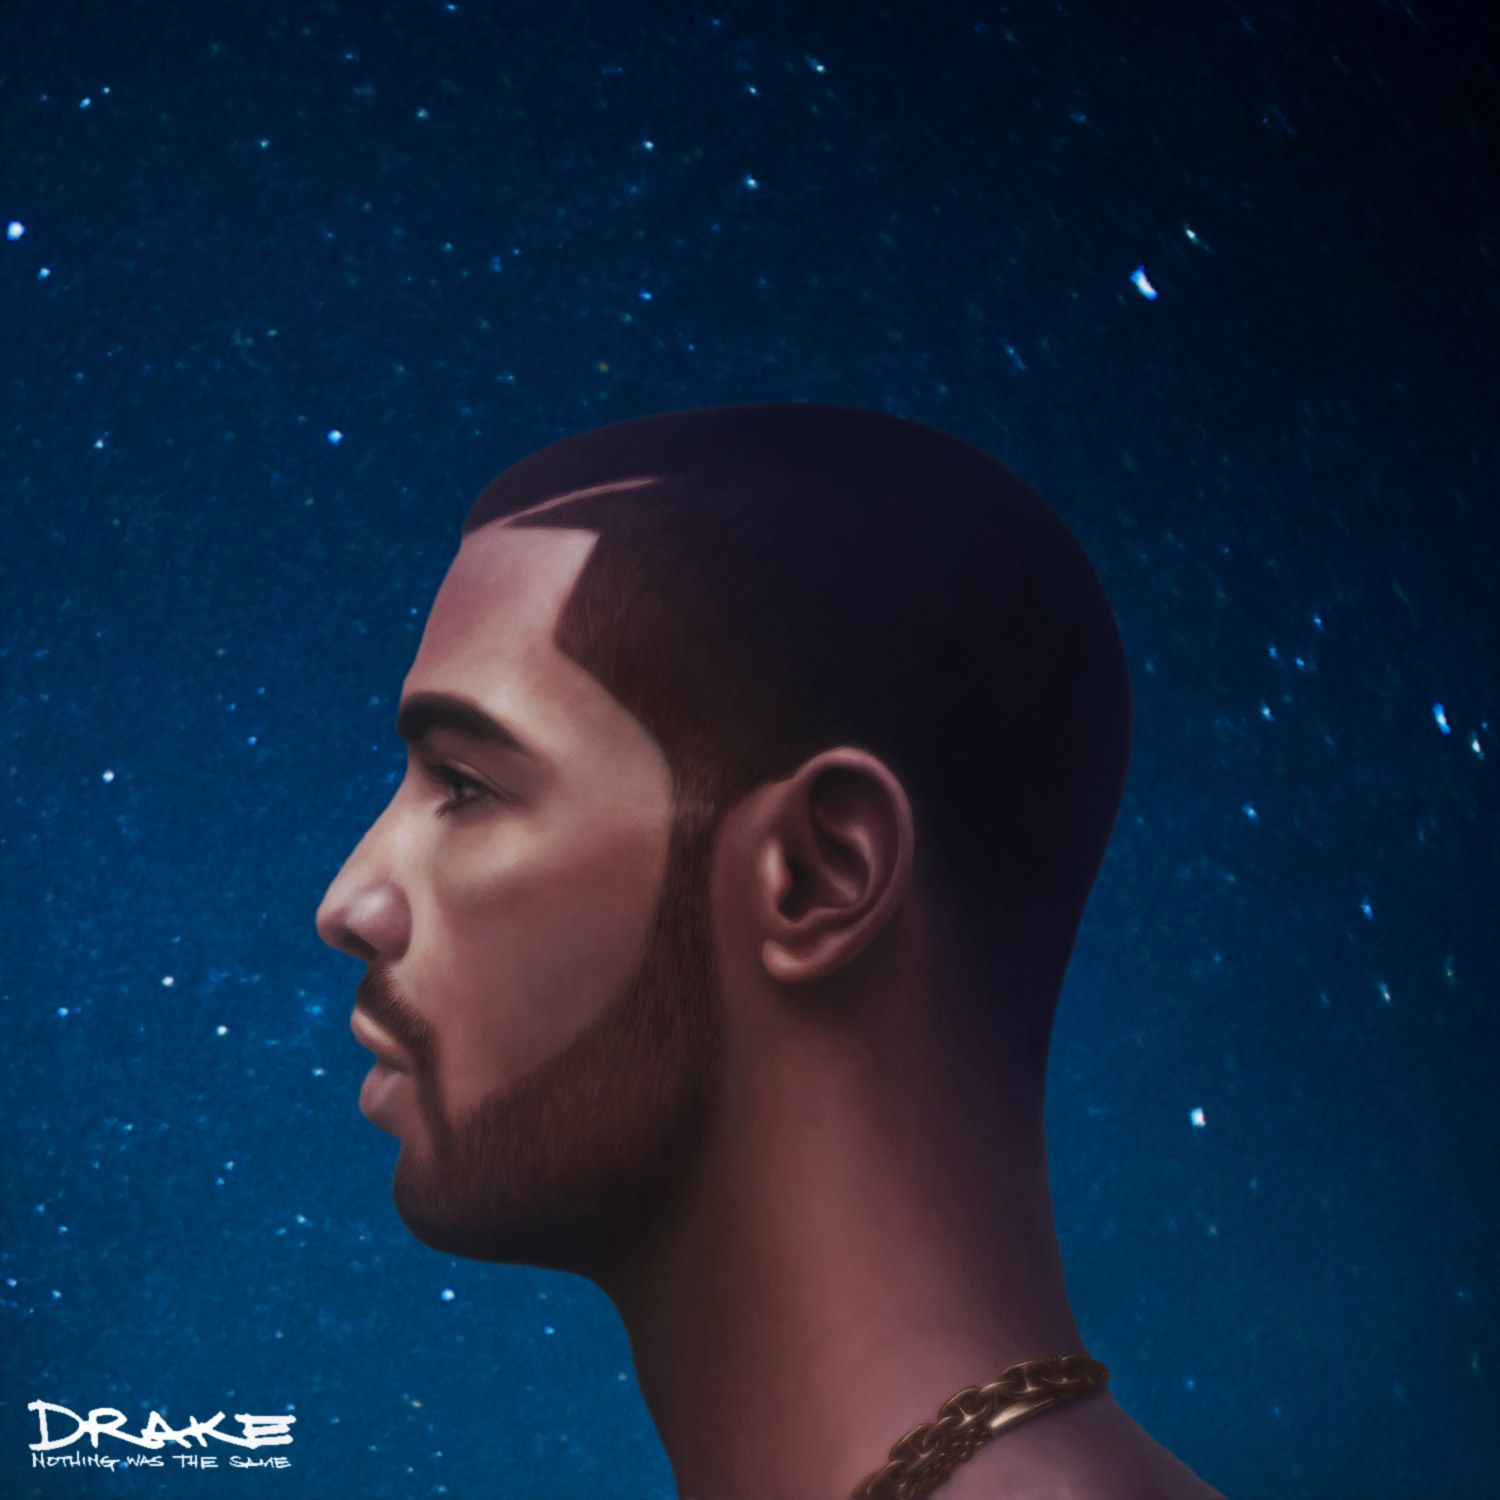 1500x1500 NWTS is Drake's solid mindblow classic « Kanye West Forum